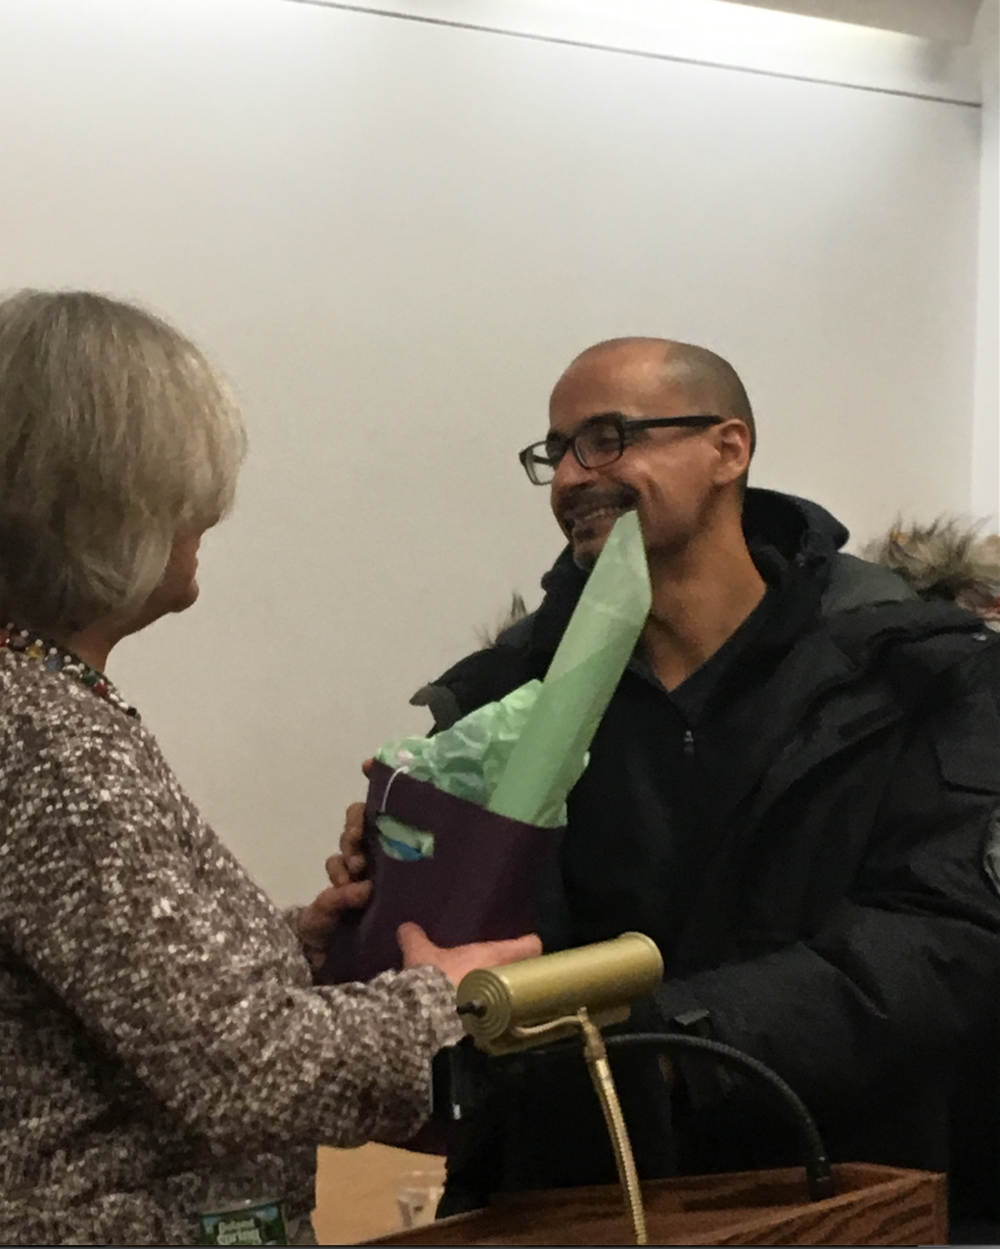 Junot Diaz receives the traditional FOSEL gift of a FOSEL library bag and copies of his event poster